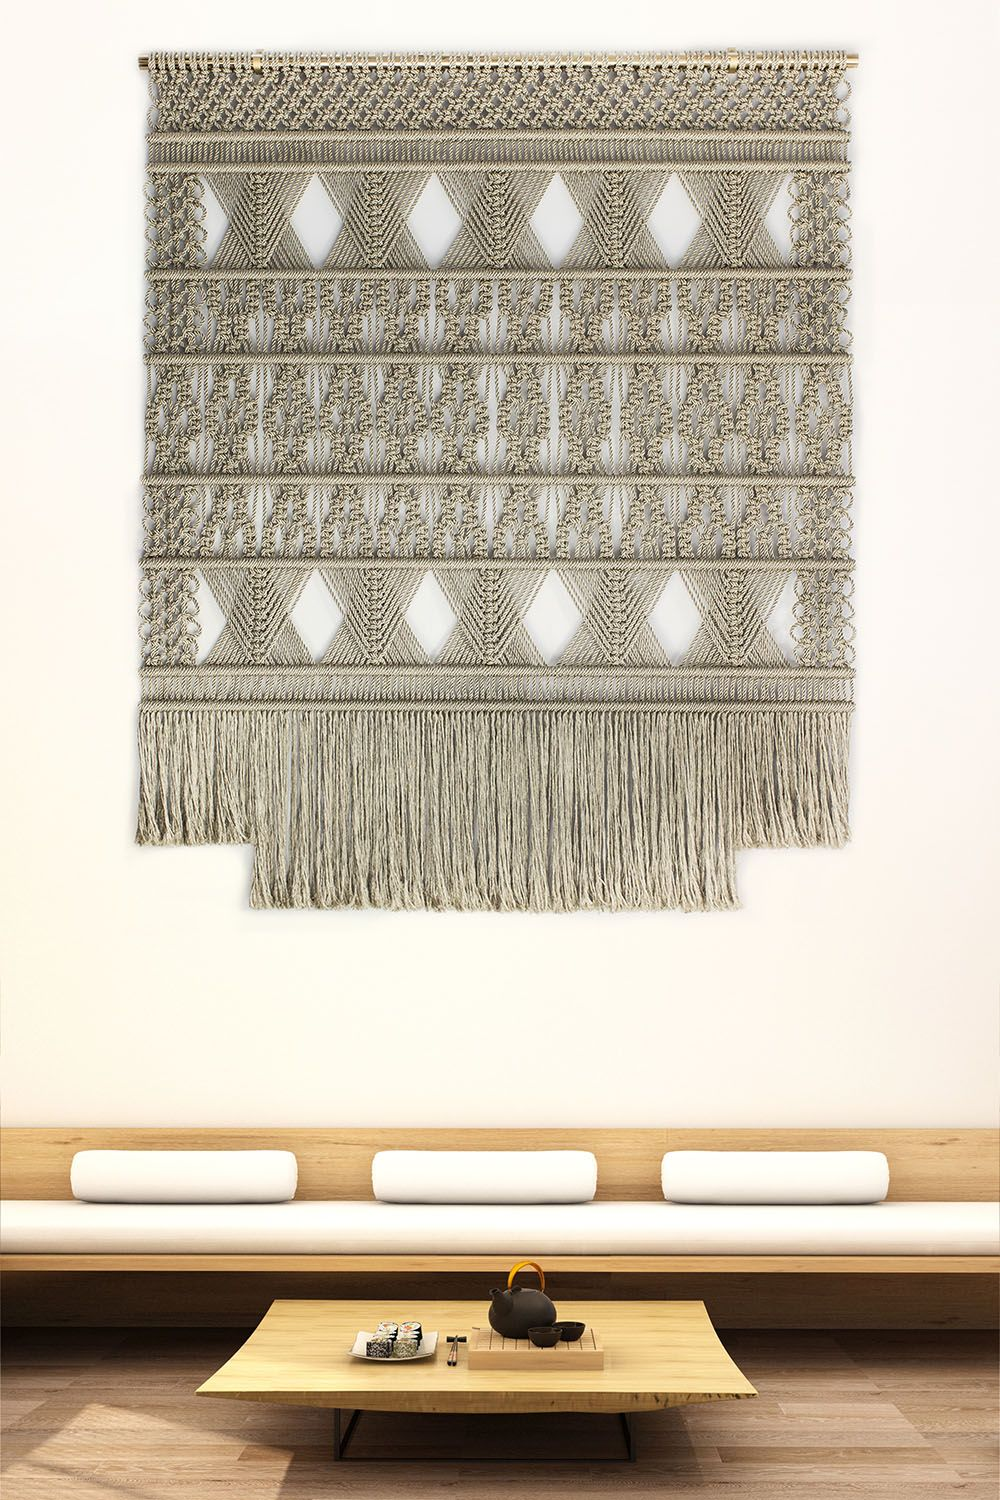 Macrame High-End Exclusive Wallhangings for your Interior by Milla Novo